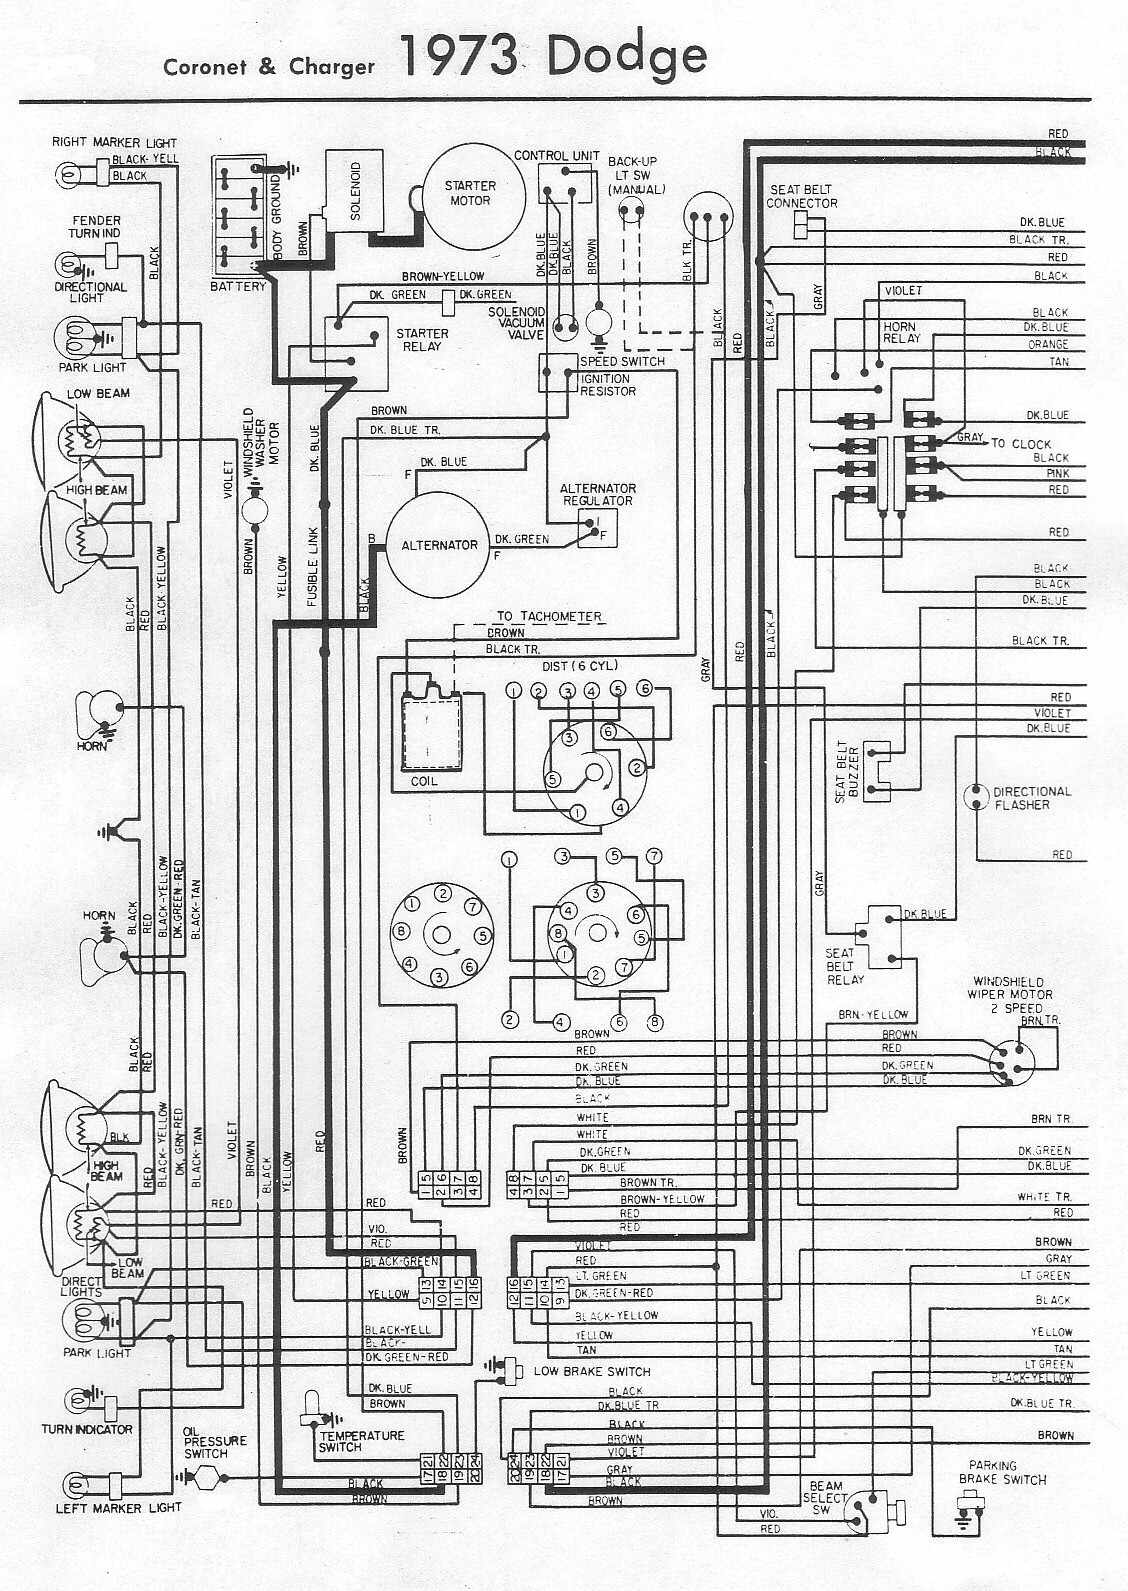 electrical wiring diagram of 1973 dodge coronet and charger?t\=1508404771 1973 dodge dart wiring diagram 1973 dodge dart instrument panel dodge challenger wiring harness at gsmx.co